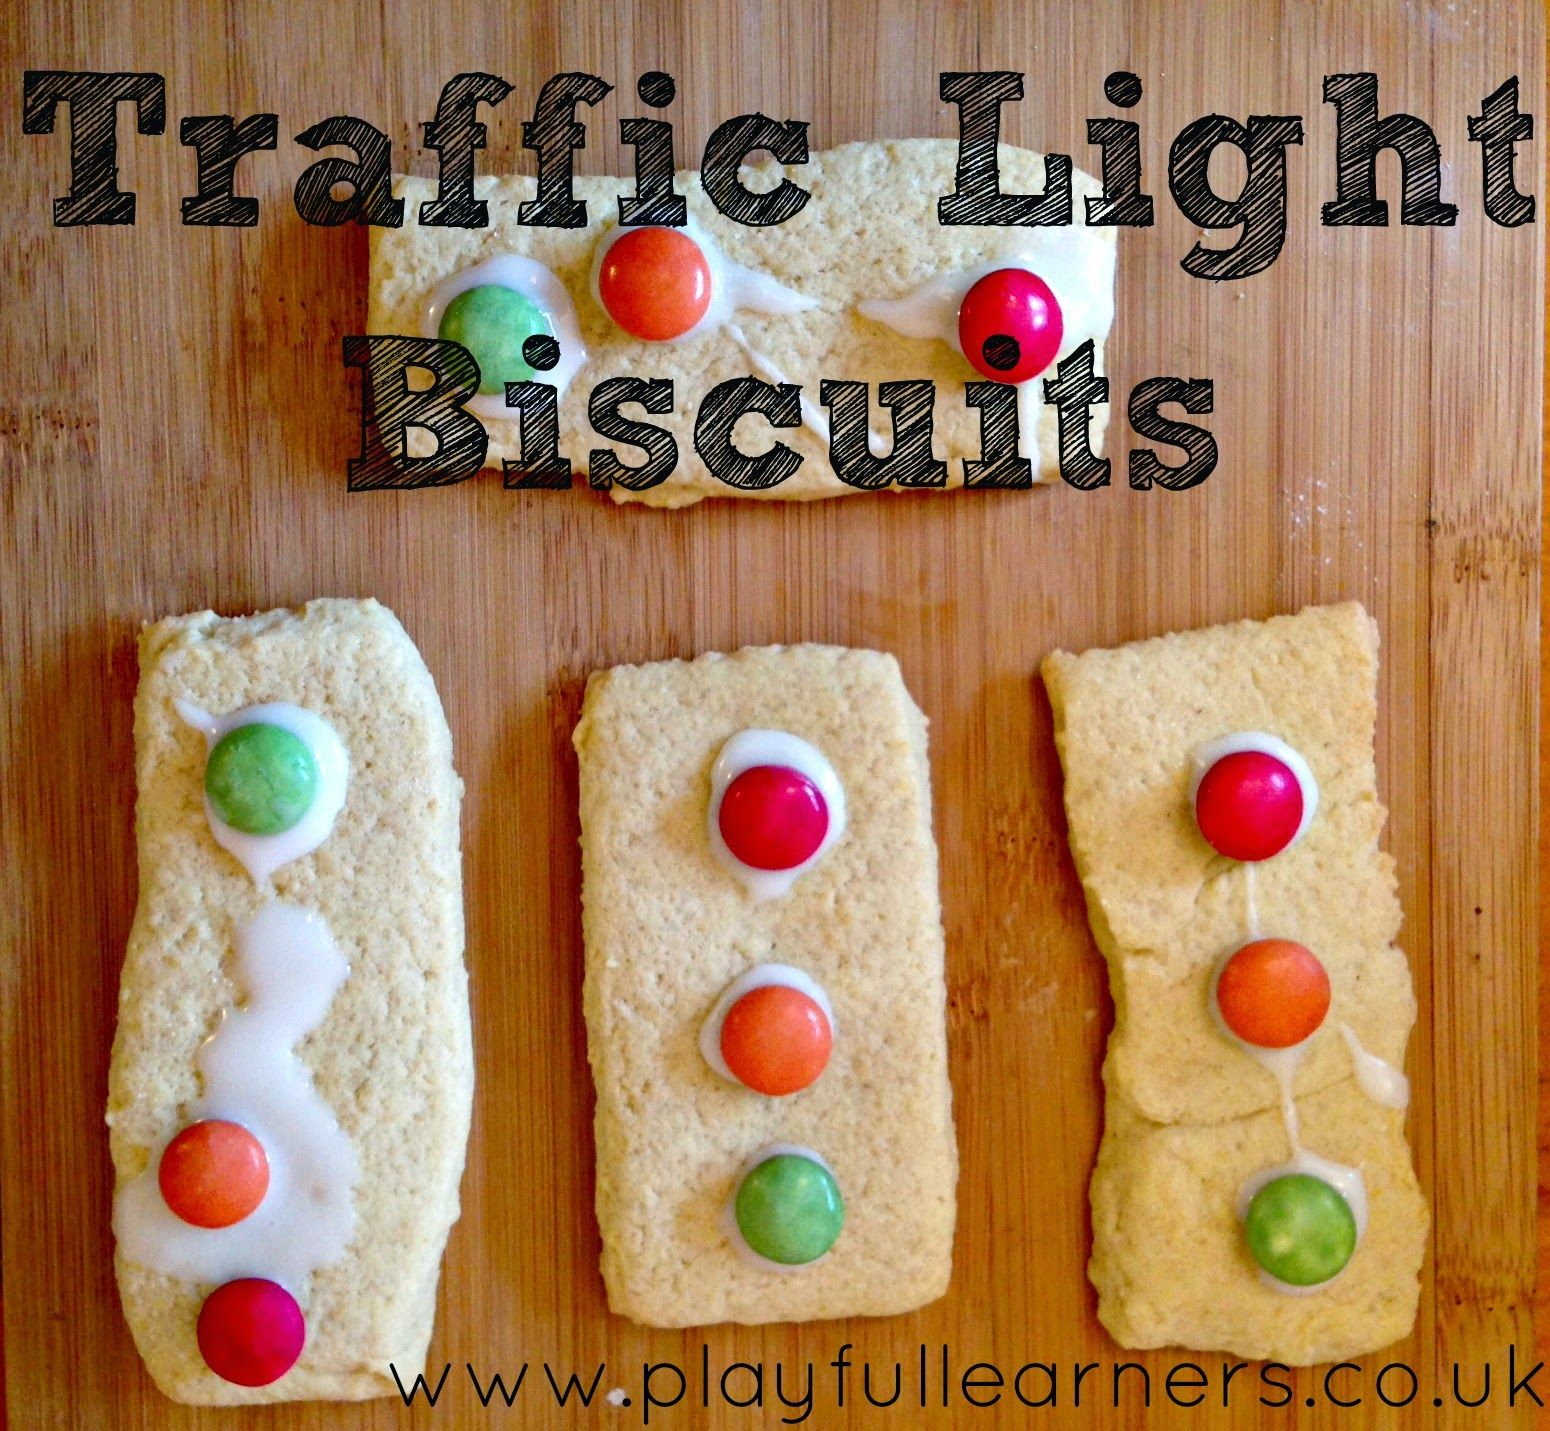 Playful Learners Traffic Light Biscuits My Son Would